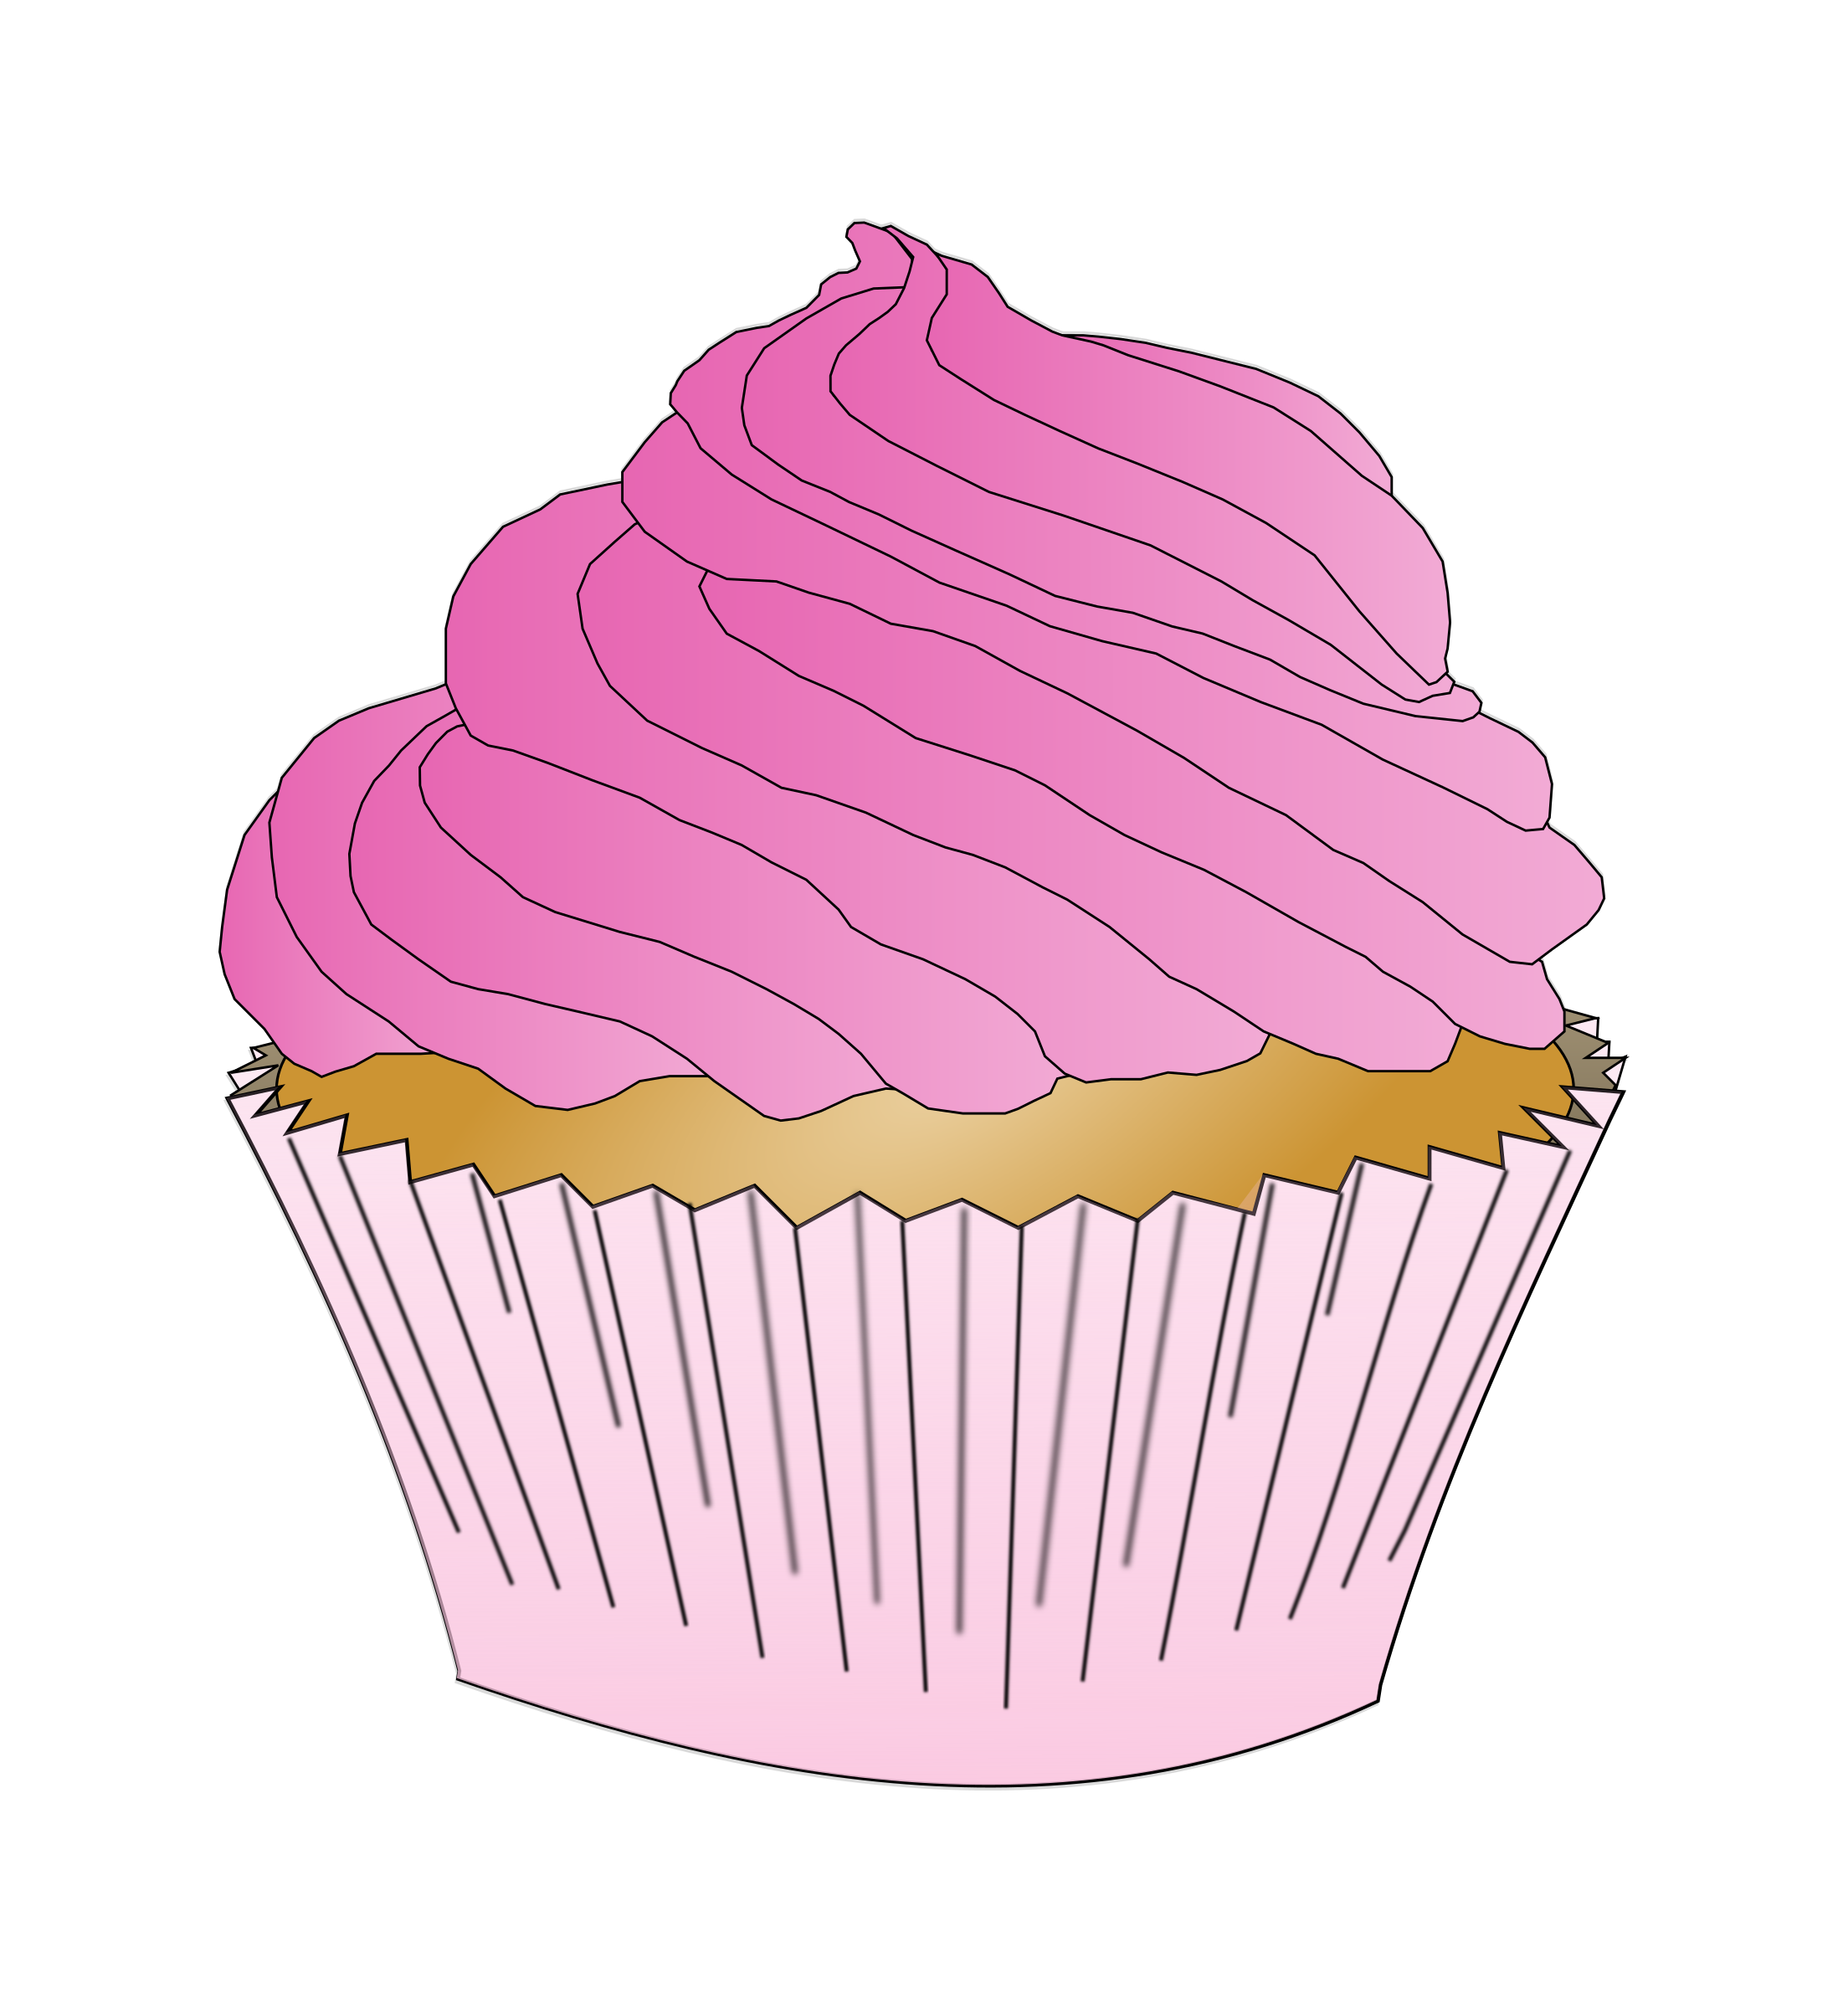 Swimsuit clipart floaty. Pink cupcake big image